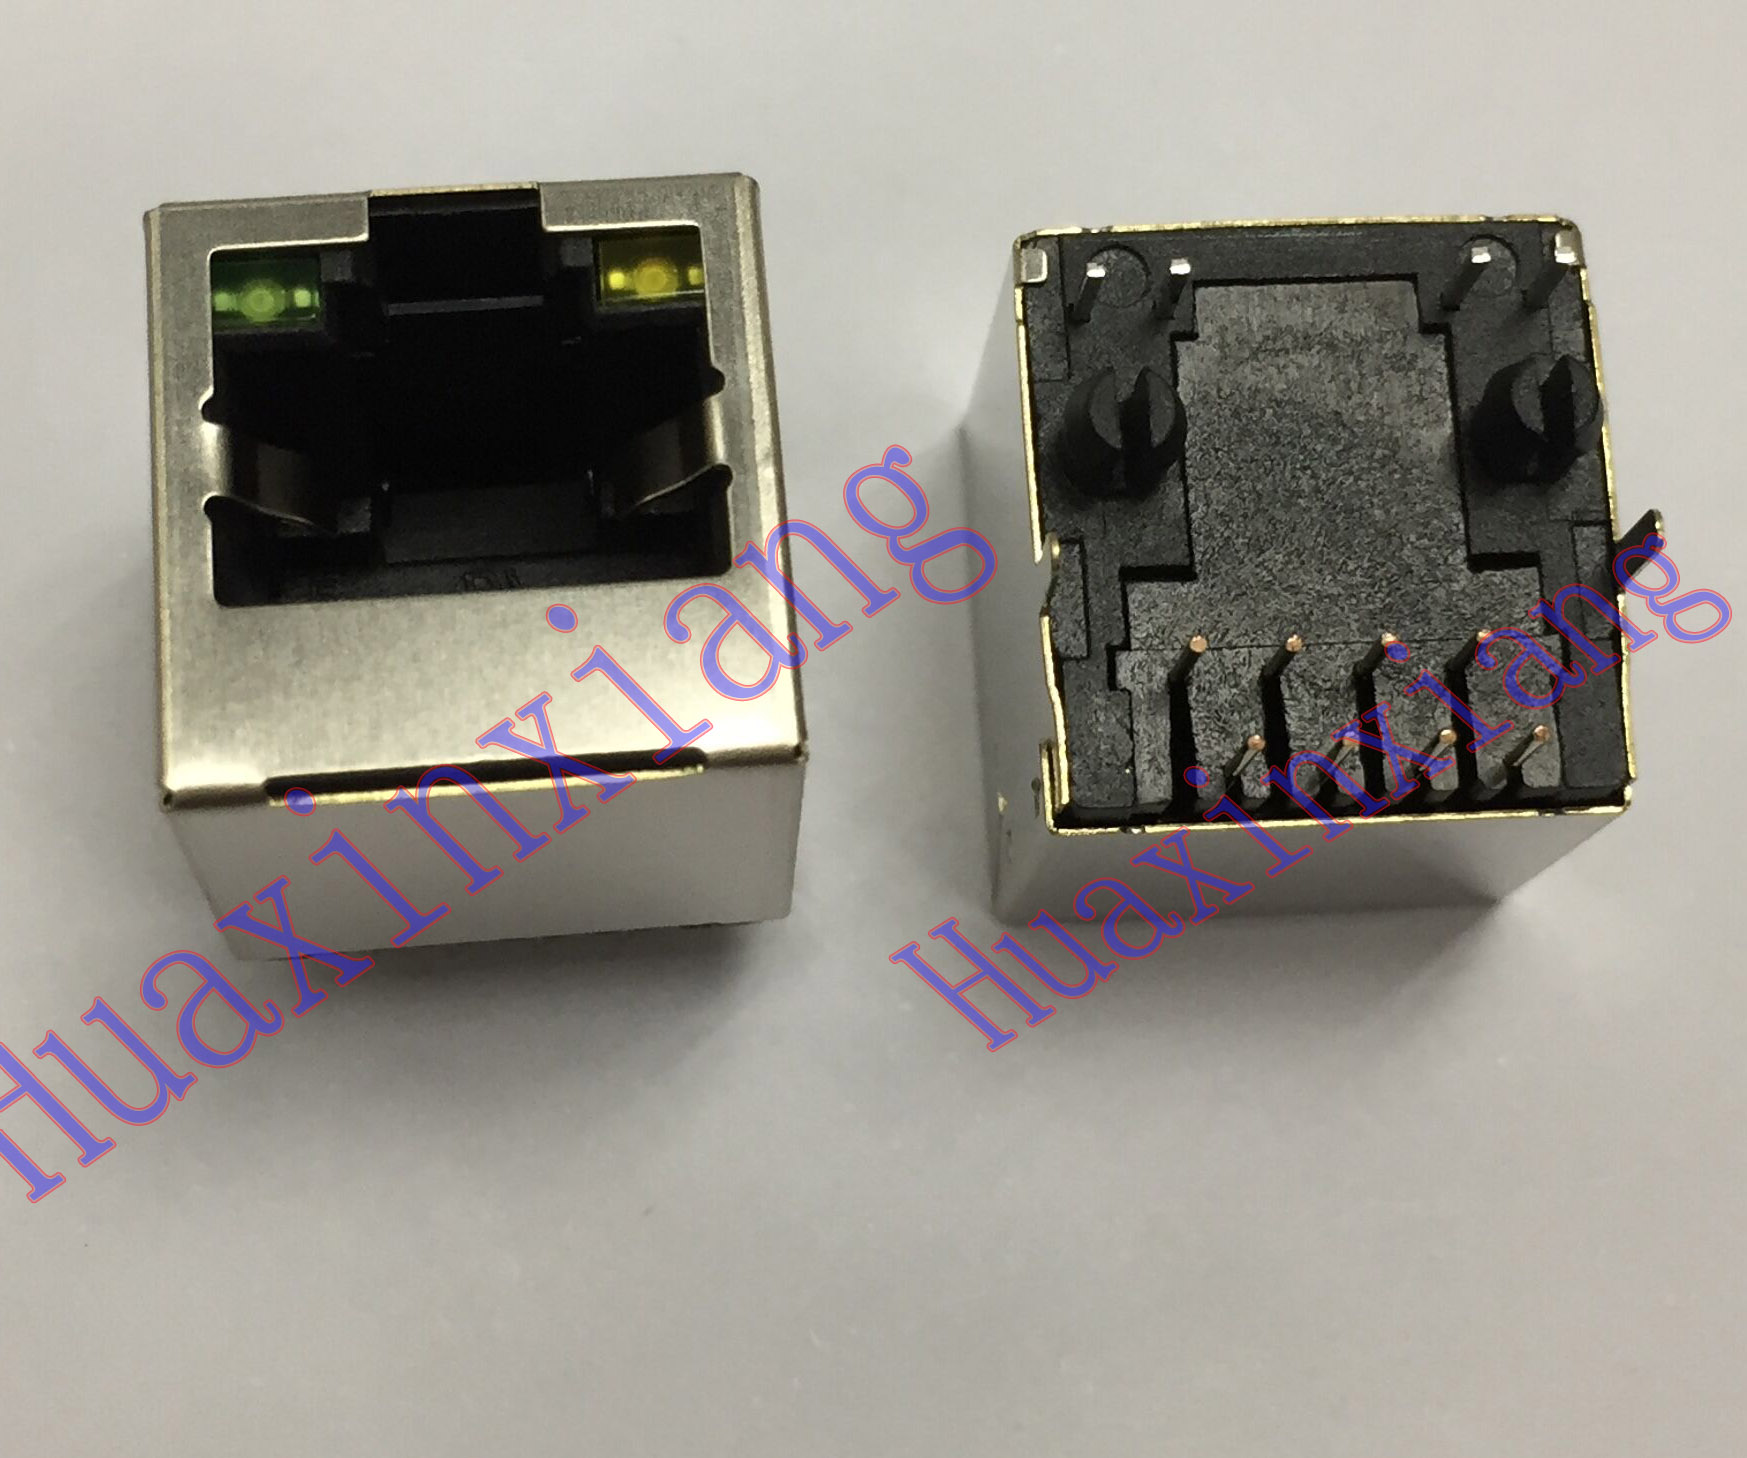 20PCS/Lot Steel Shield <font><b>RJ45</b></font> 8P8C <font><b>Jack</b></font> Connector With LED 180 Degree vertical Network Internet Modular image